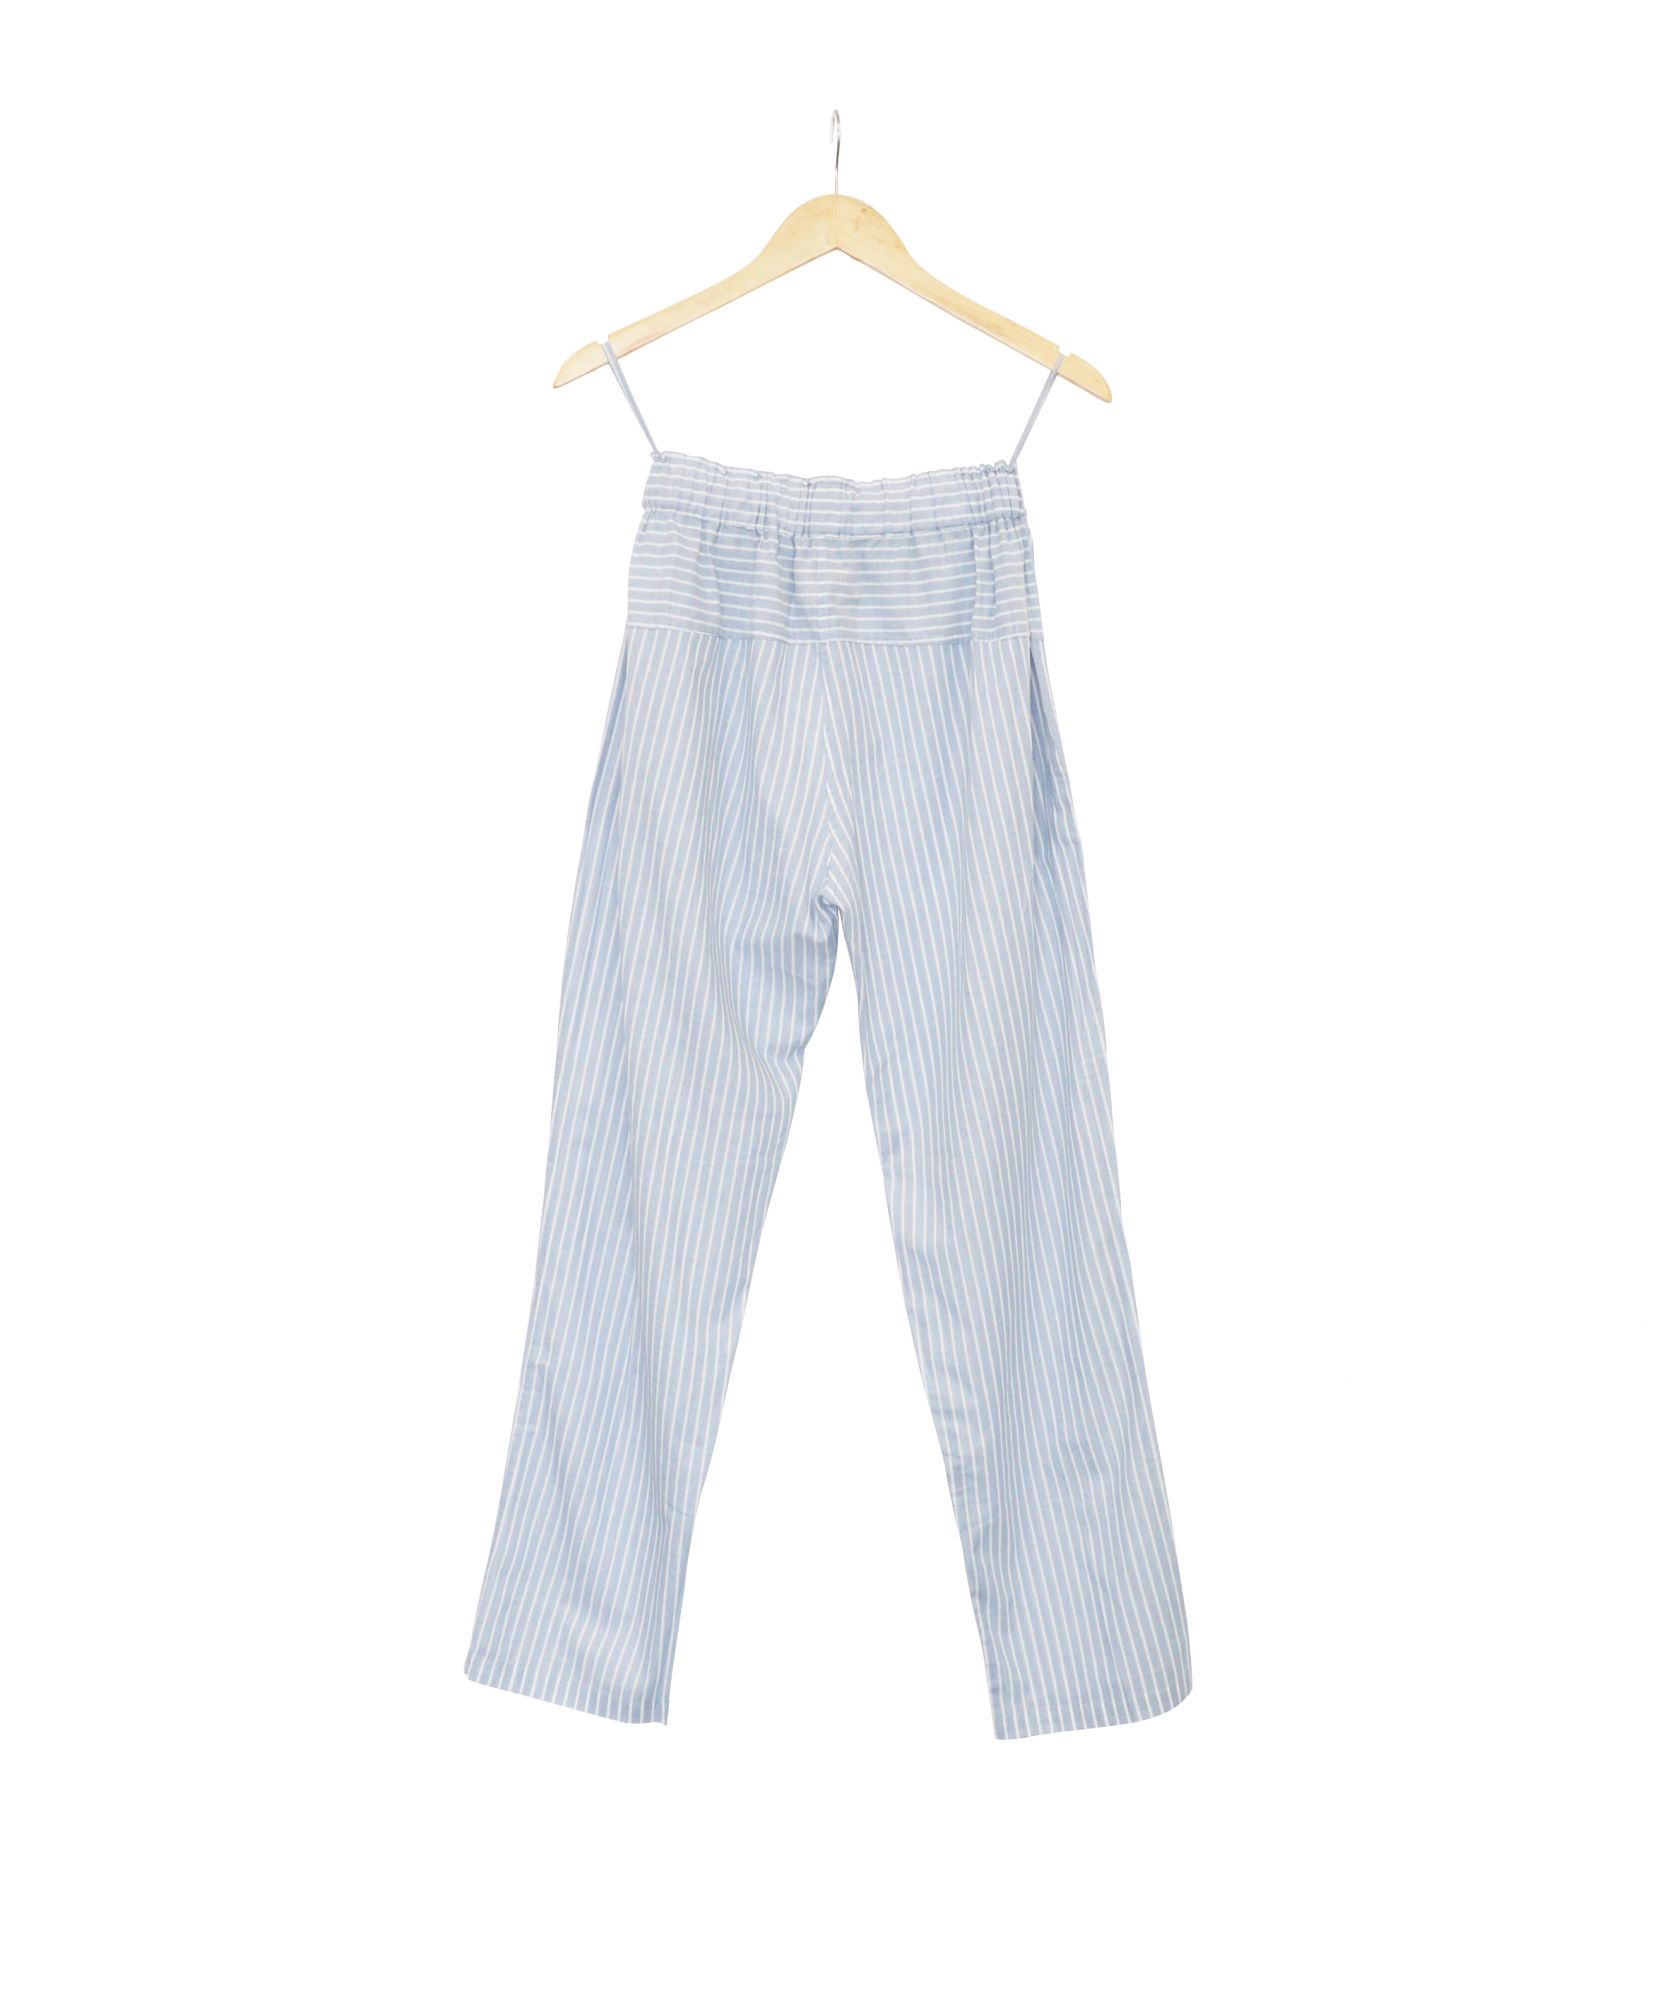 Ankle Length Pants - Chalk Light